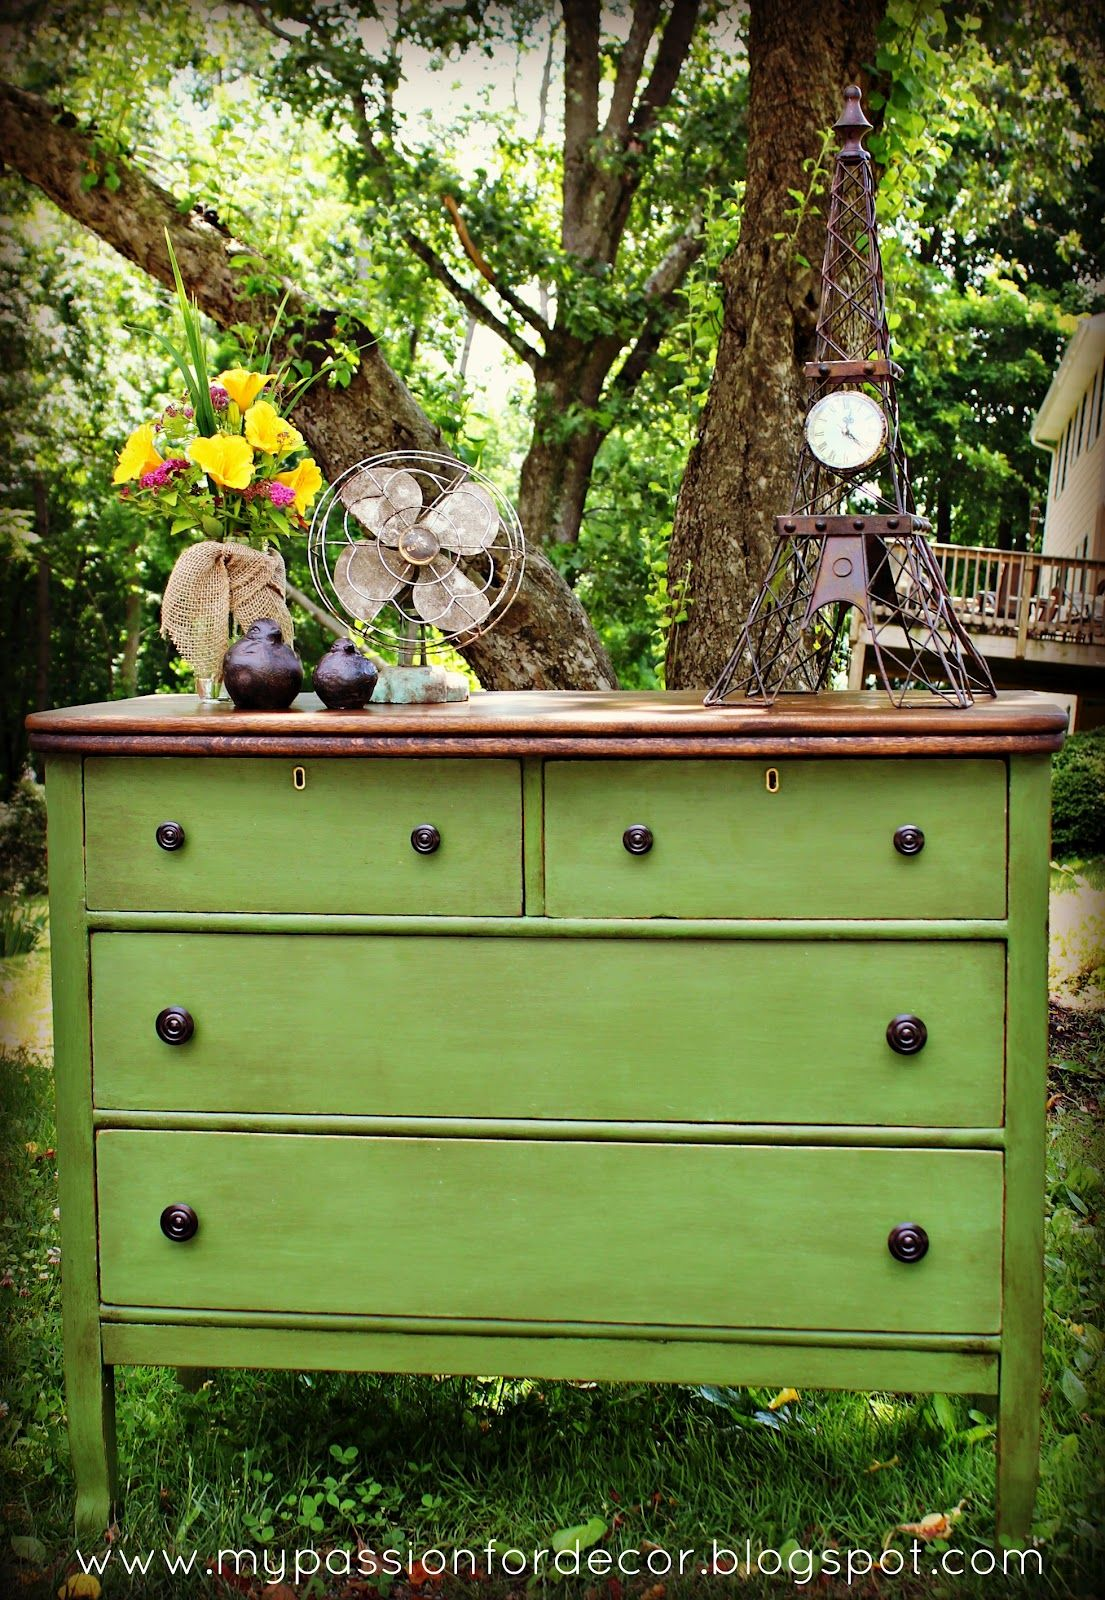 Pin By Southern Hospitality On Hometalk Diy Green Dresser Refinishing Furniture Furniture Makeover